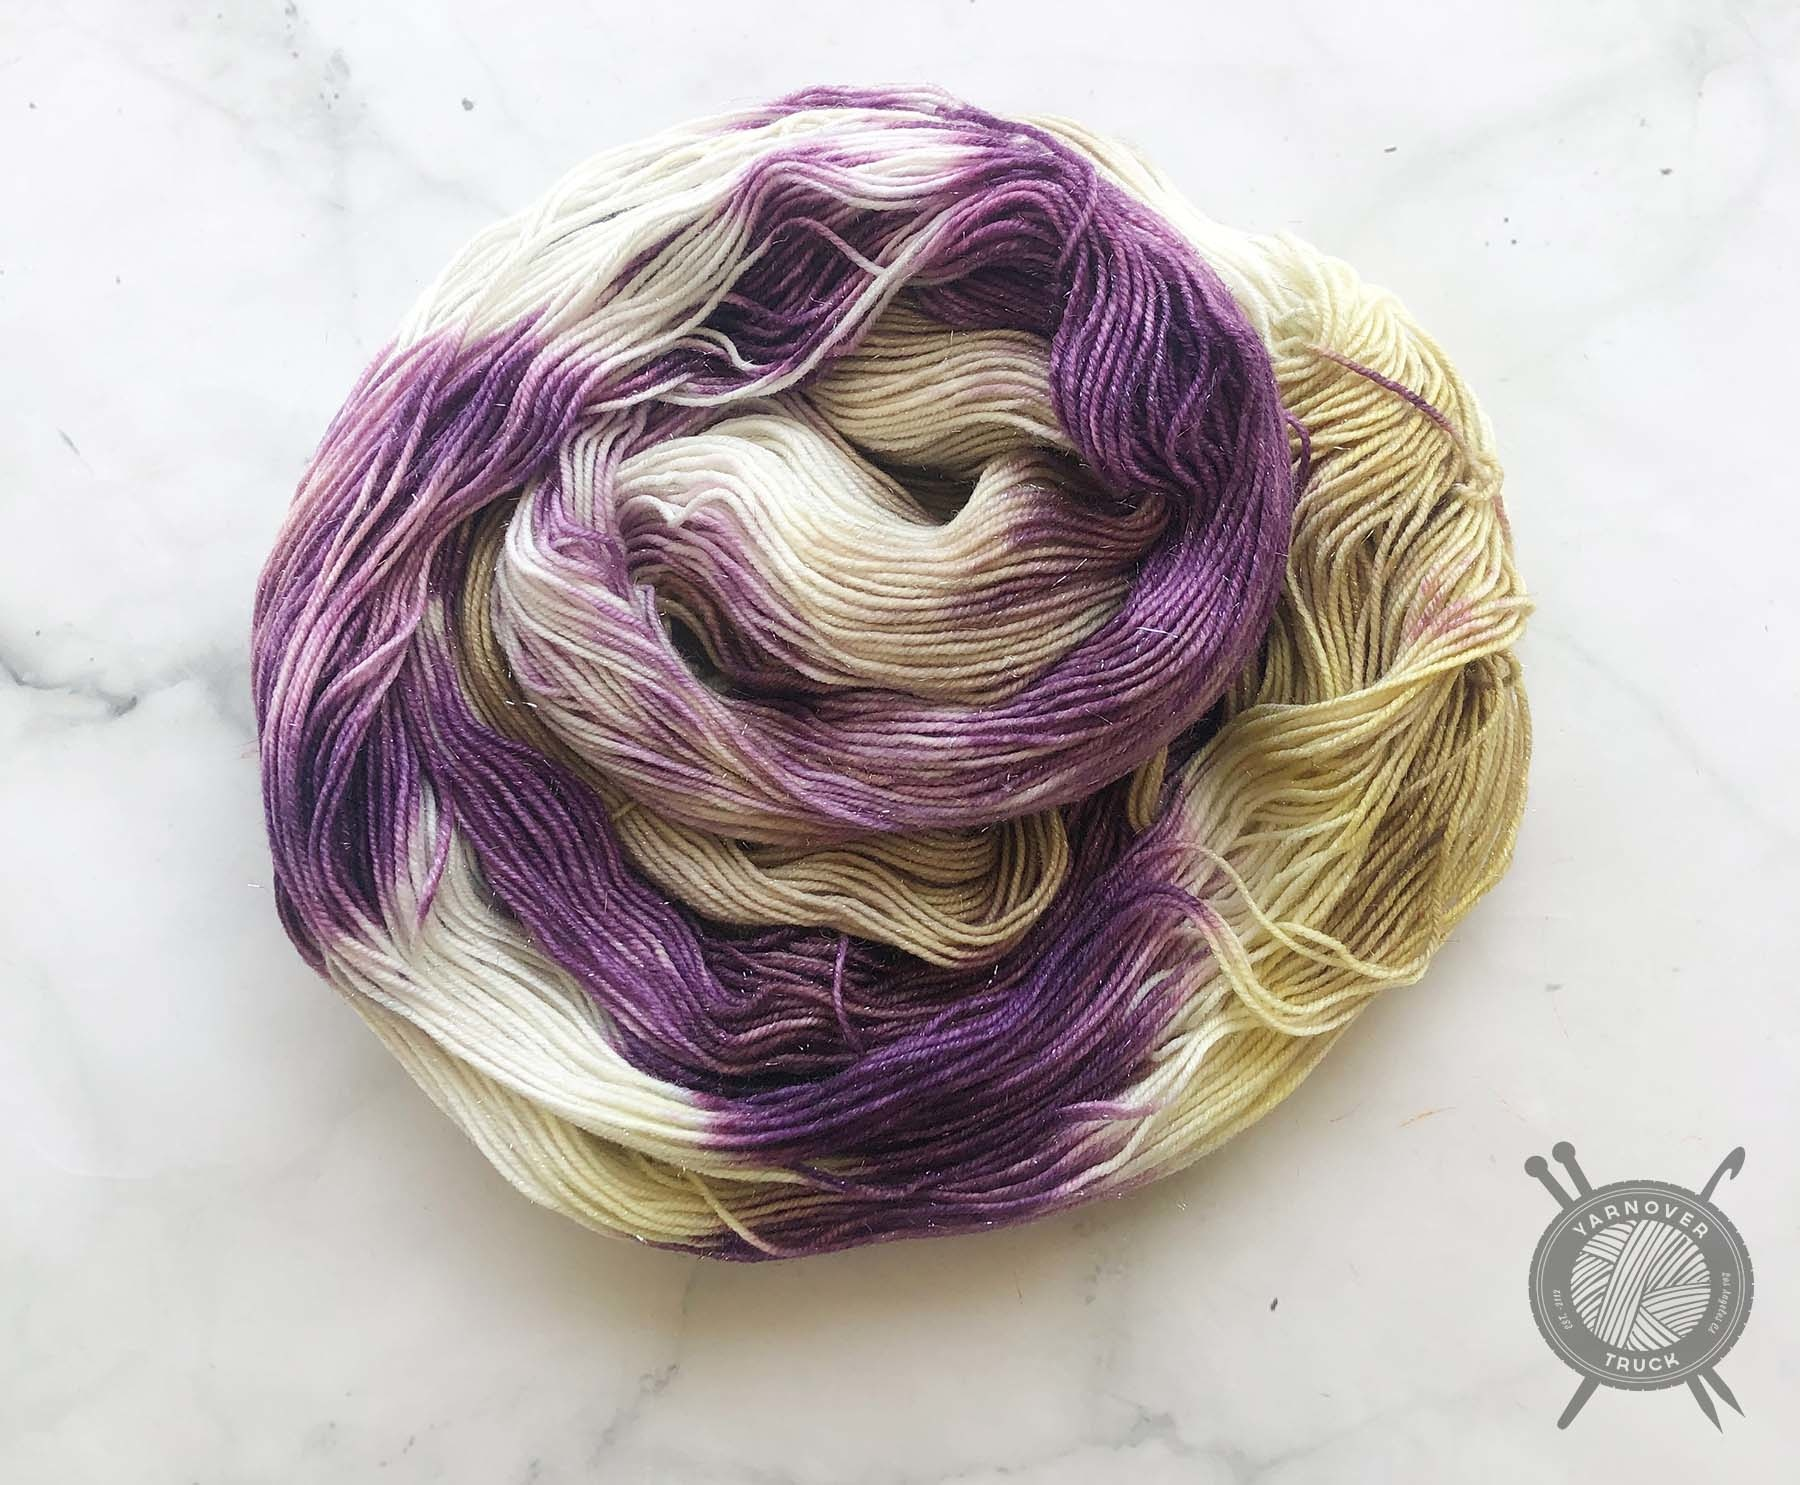 Forbidden Fiber Co. August 2021 Color of the Month on Pride from Forbidden Fiber Co.